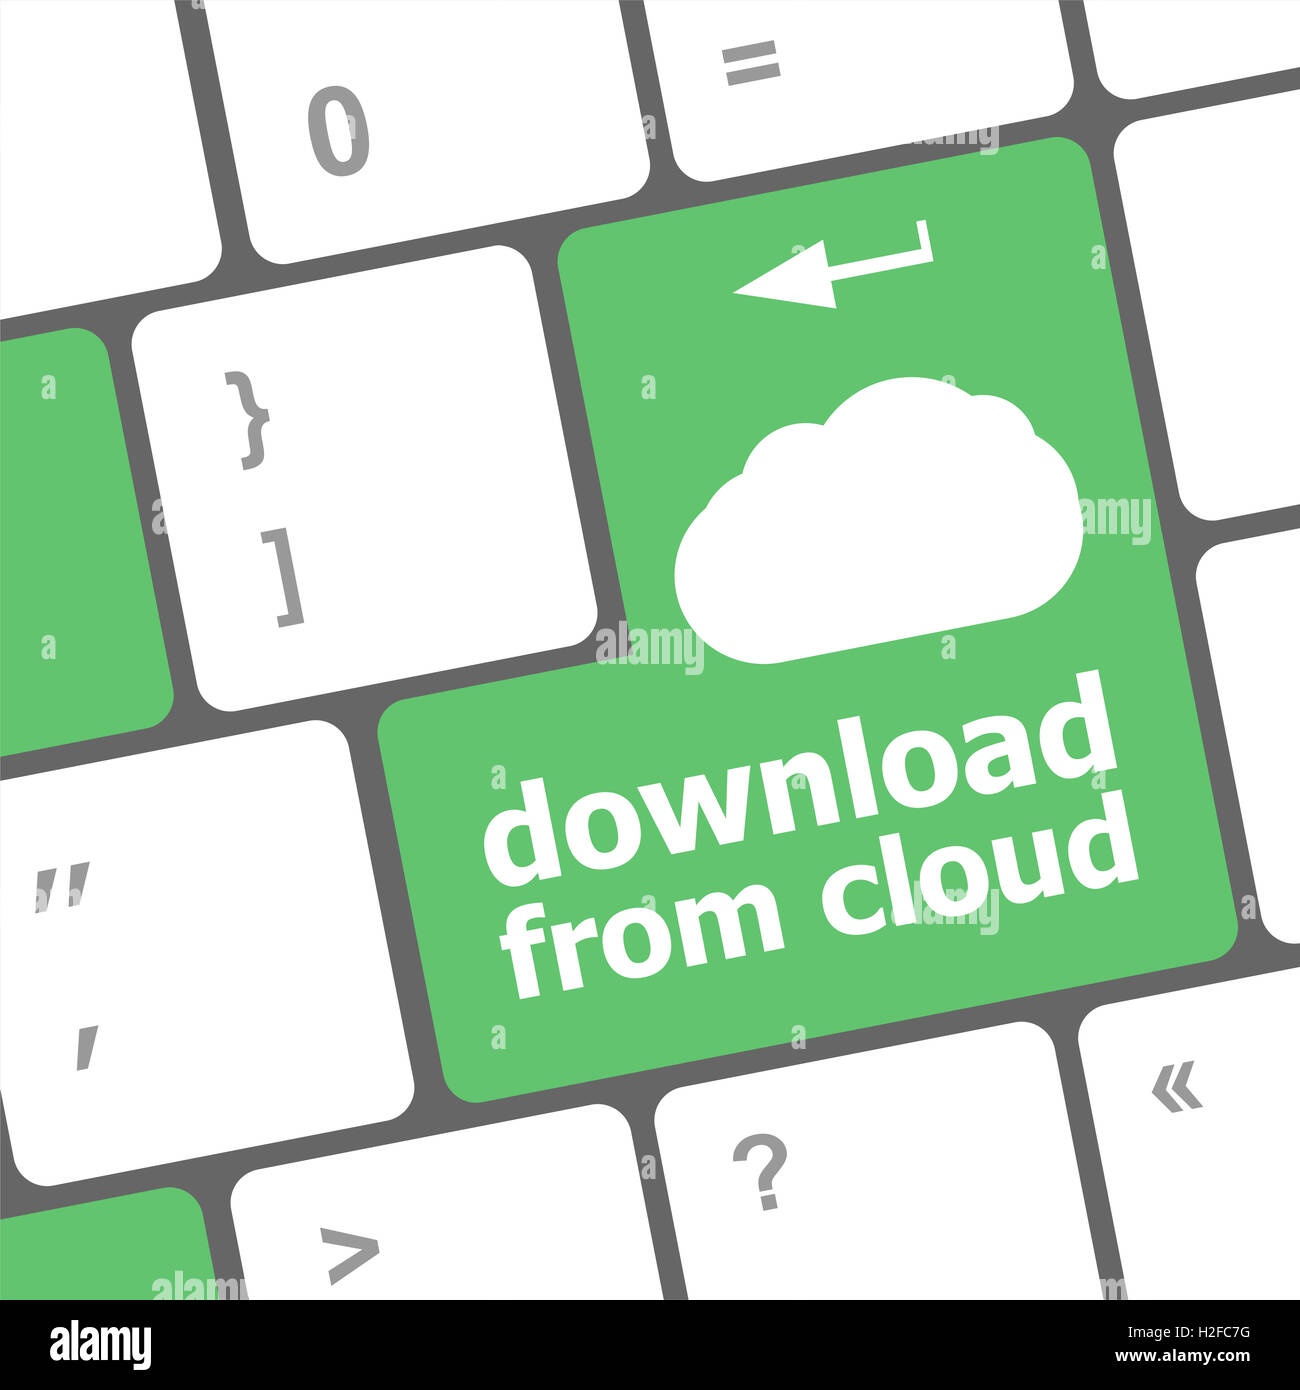 download from cloud, computer keyboard for cloud computing